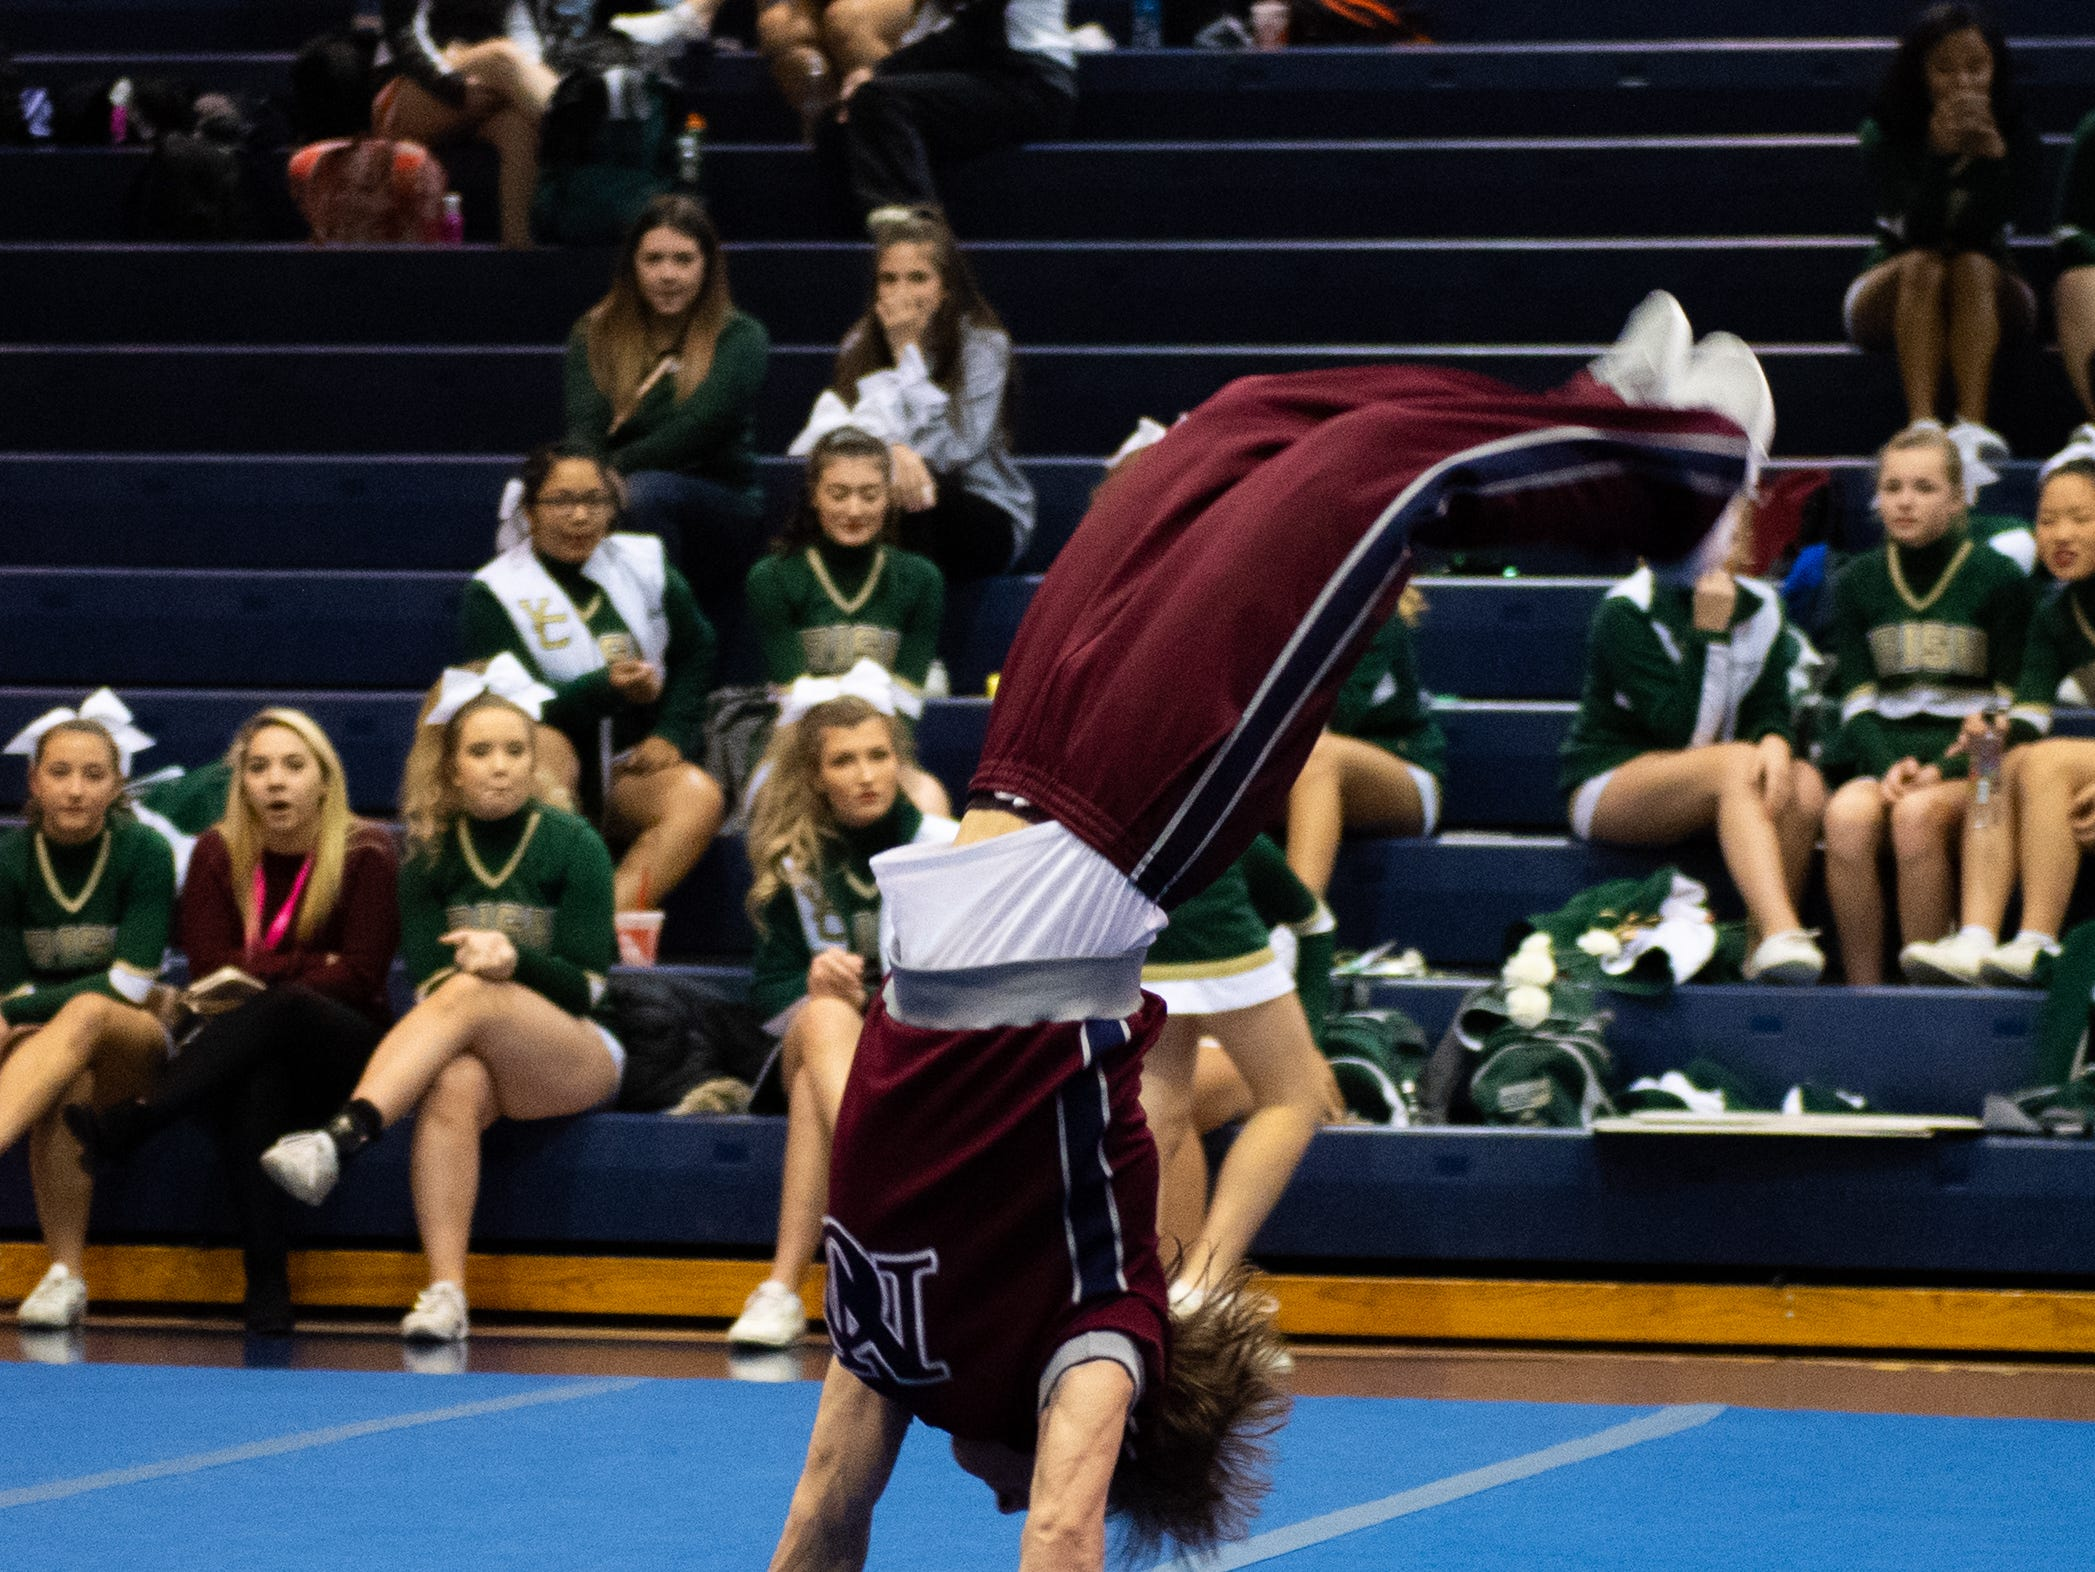 New Oxford competes in the tumble competition during the YAIAA competitive spirit championships at Dallastown High School, Saturday, December 1, 2018. Dover won the small-varsity division and Red Lion won the coed division.